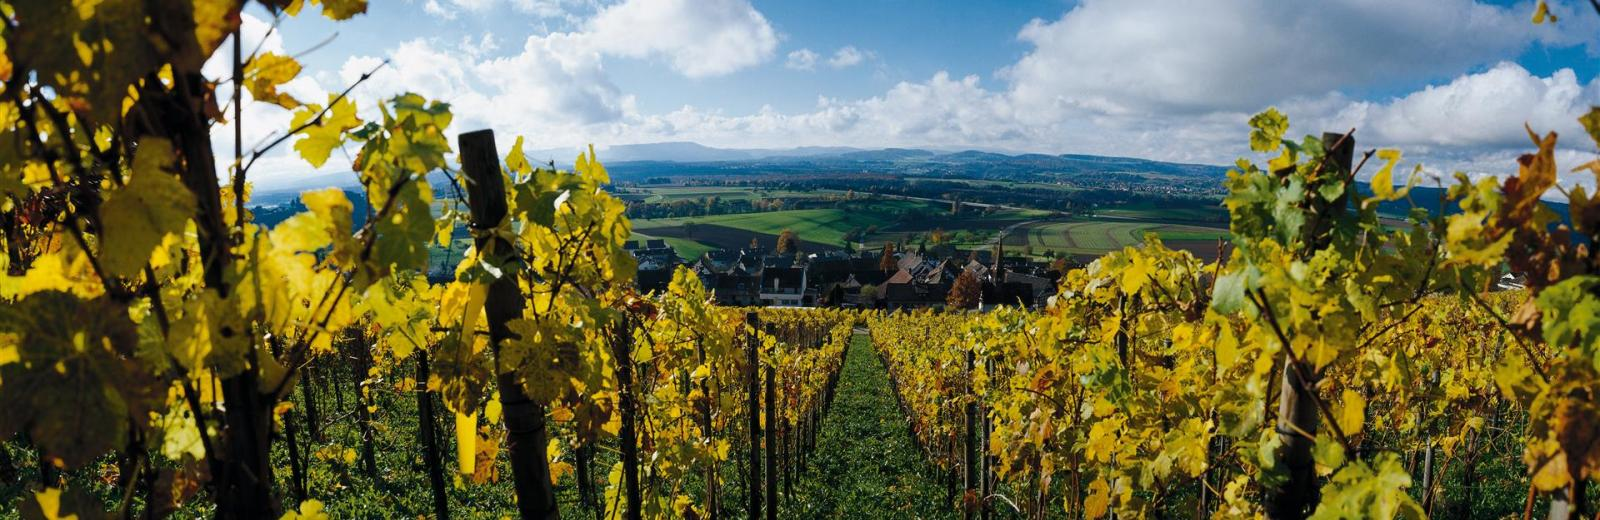 Vineyards © Switzerland Tourism